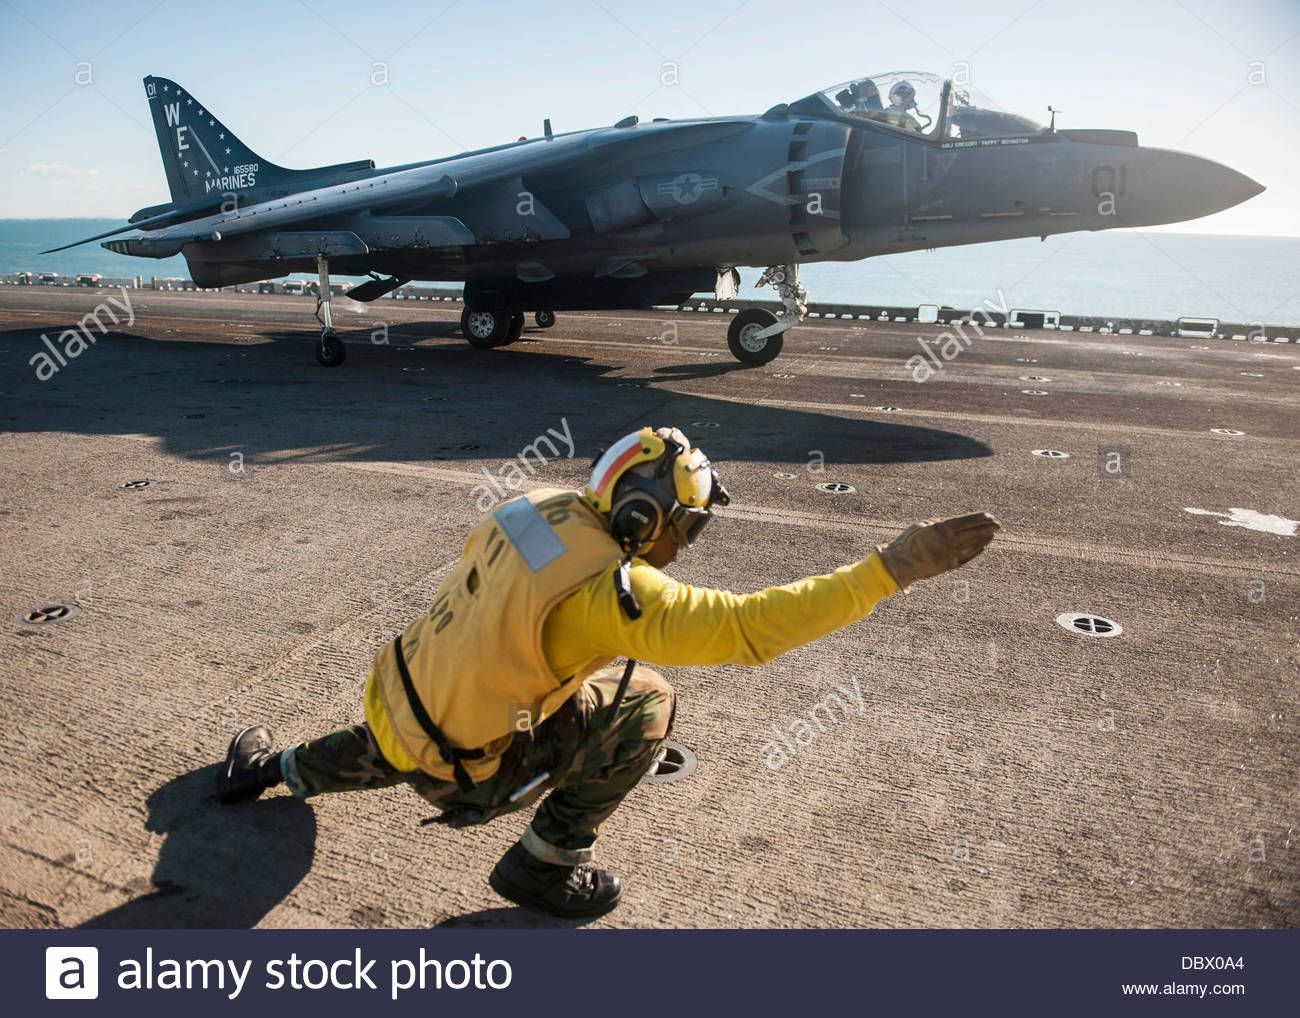 best images about naval aviation museums a us navy aviation boatswain s mate signals the pilot of an av 8b